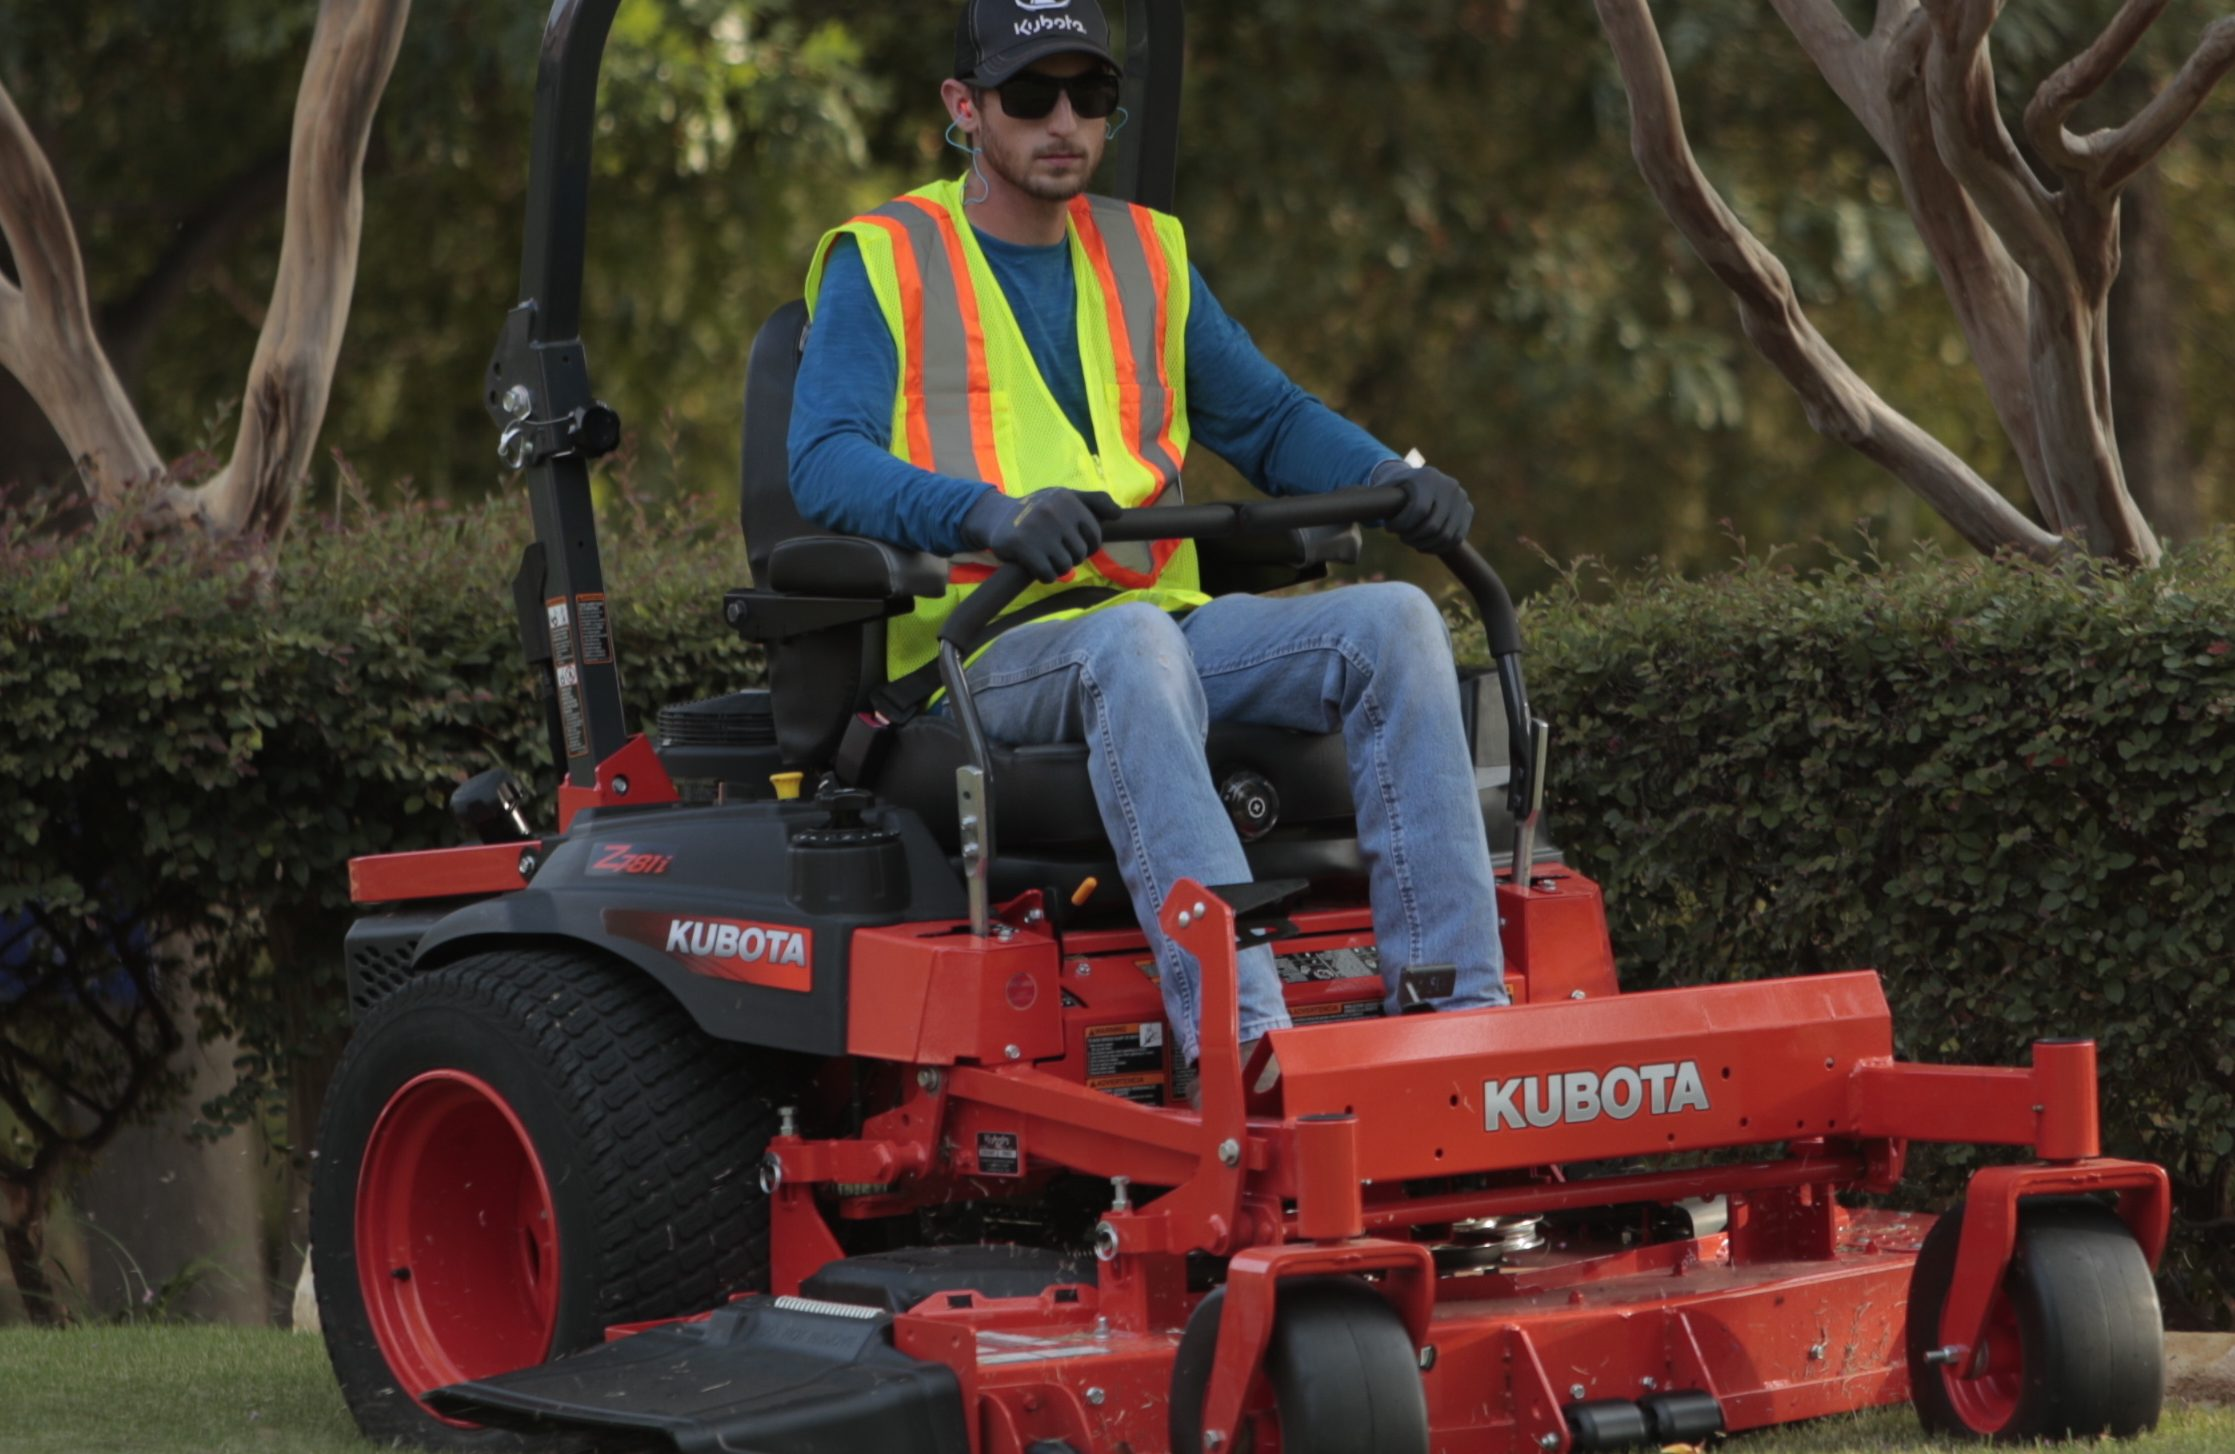 Kubota introduces three new models in the Z700 series zero turn lawn mowers. (Courtesy: Kubota Tractor)